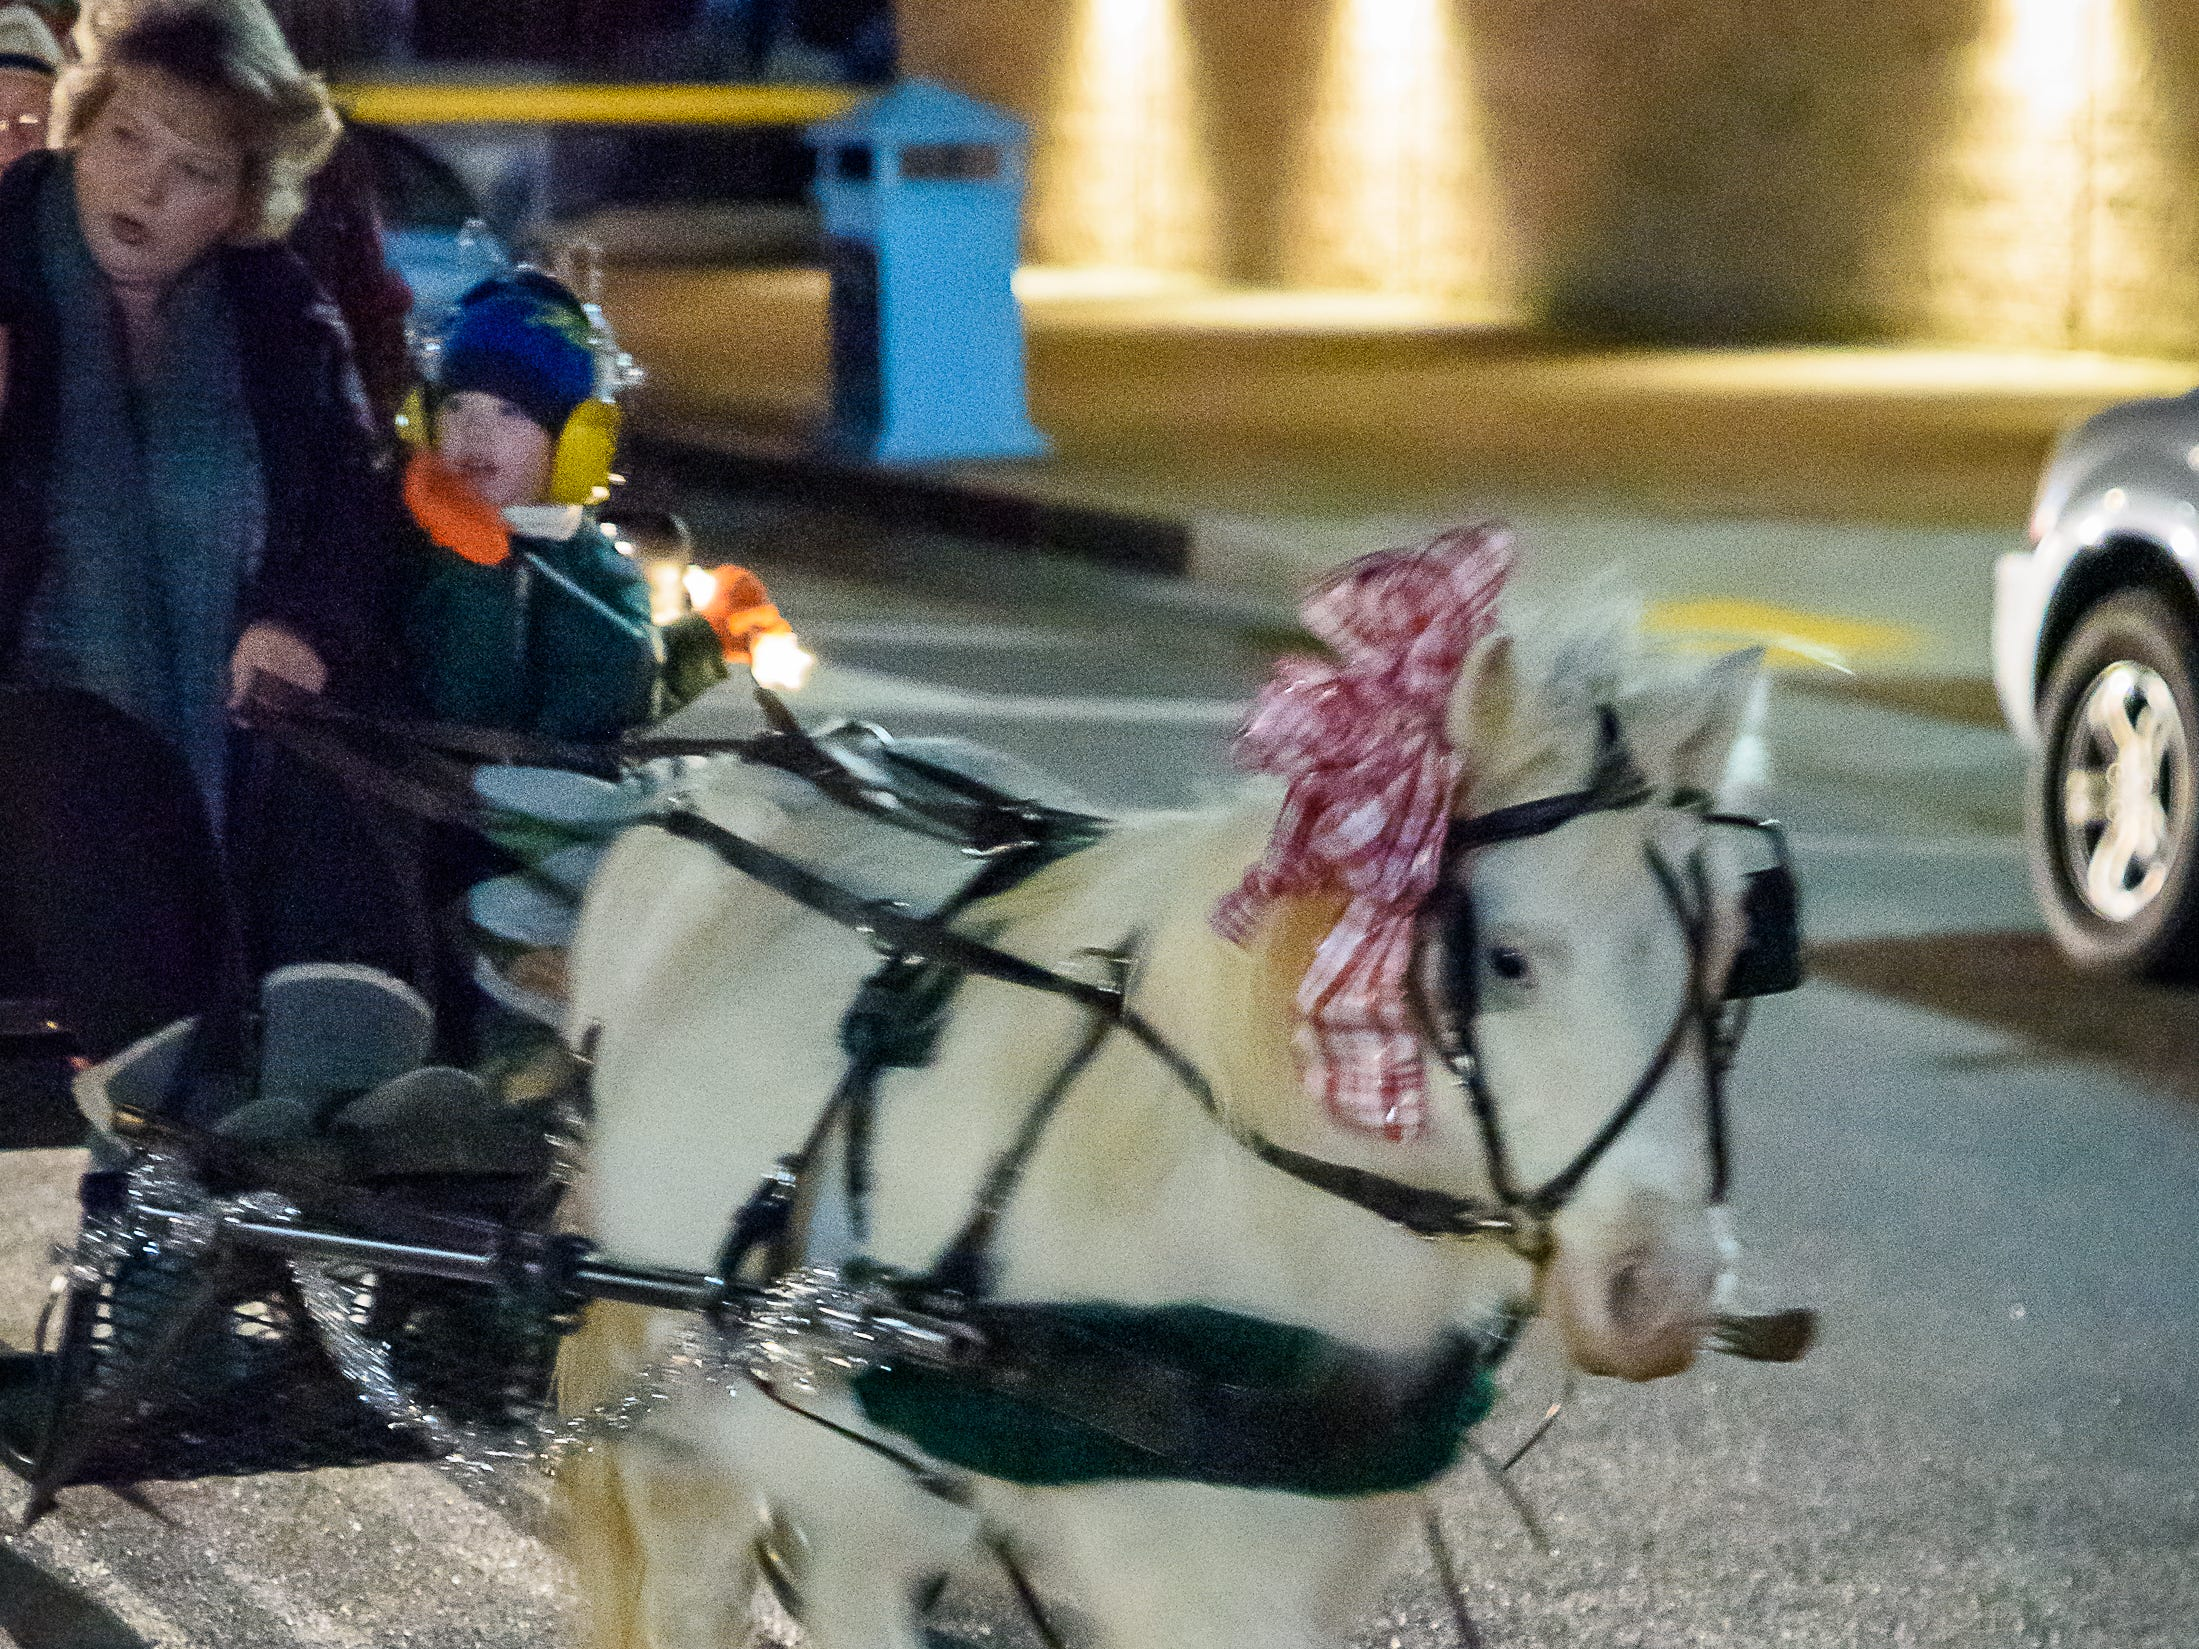 A lighted horse parade was one of the attractions of the first Festive Friday of the season in Cape Charles.